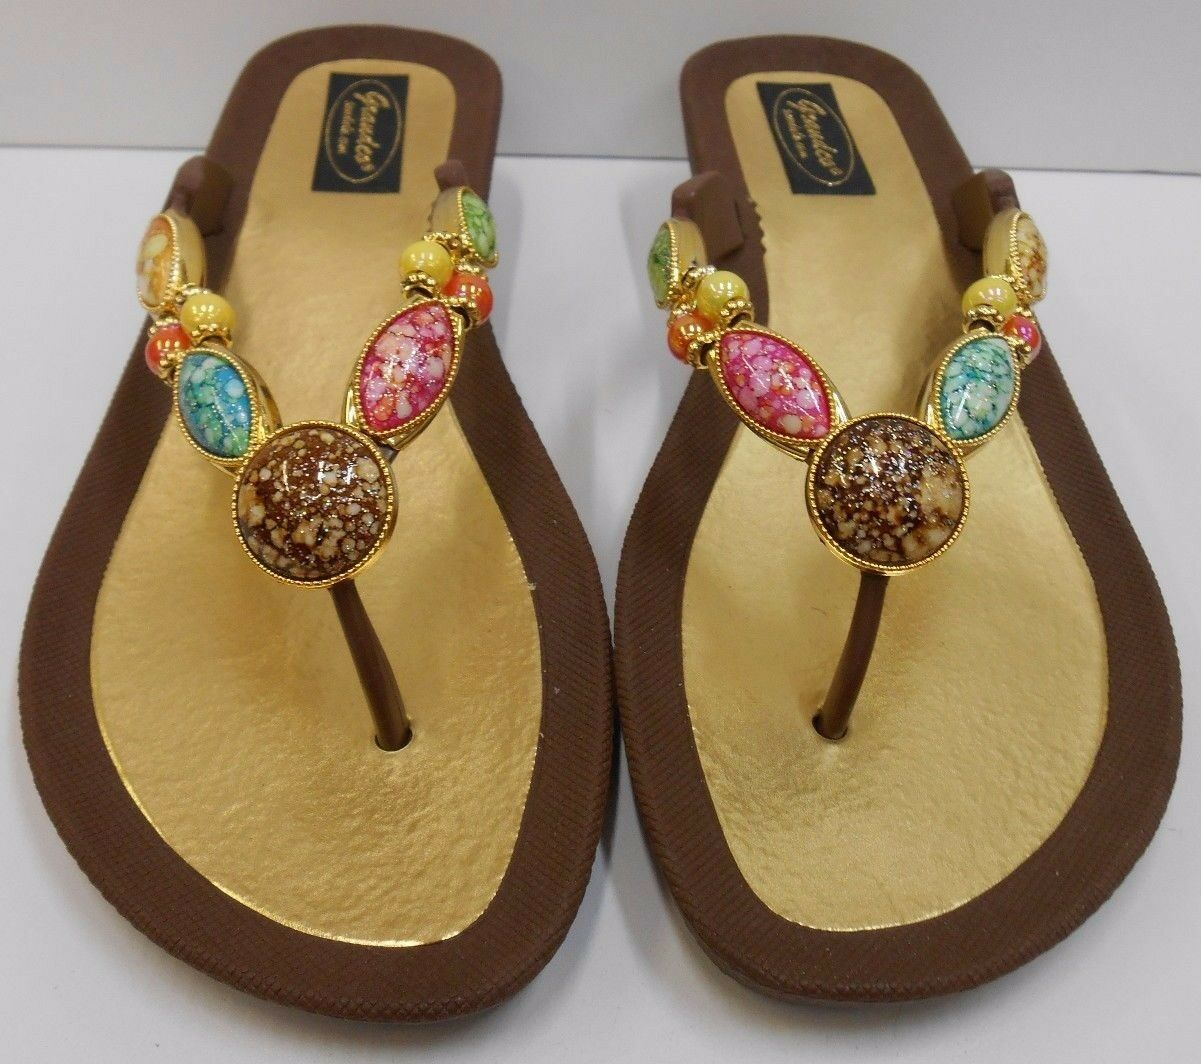 GRANDCO SANDALS Dressy Beach Pool THONG BLING Brown Frosted JEWELED Flip Flops